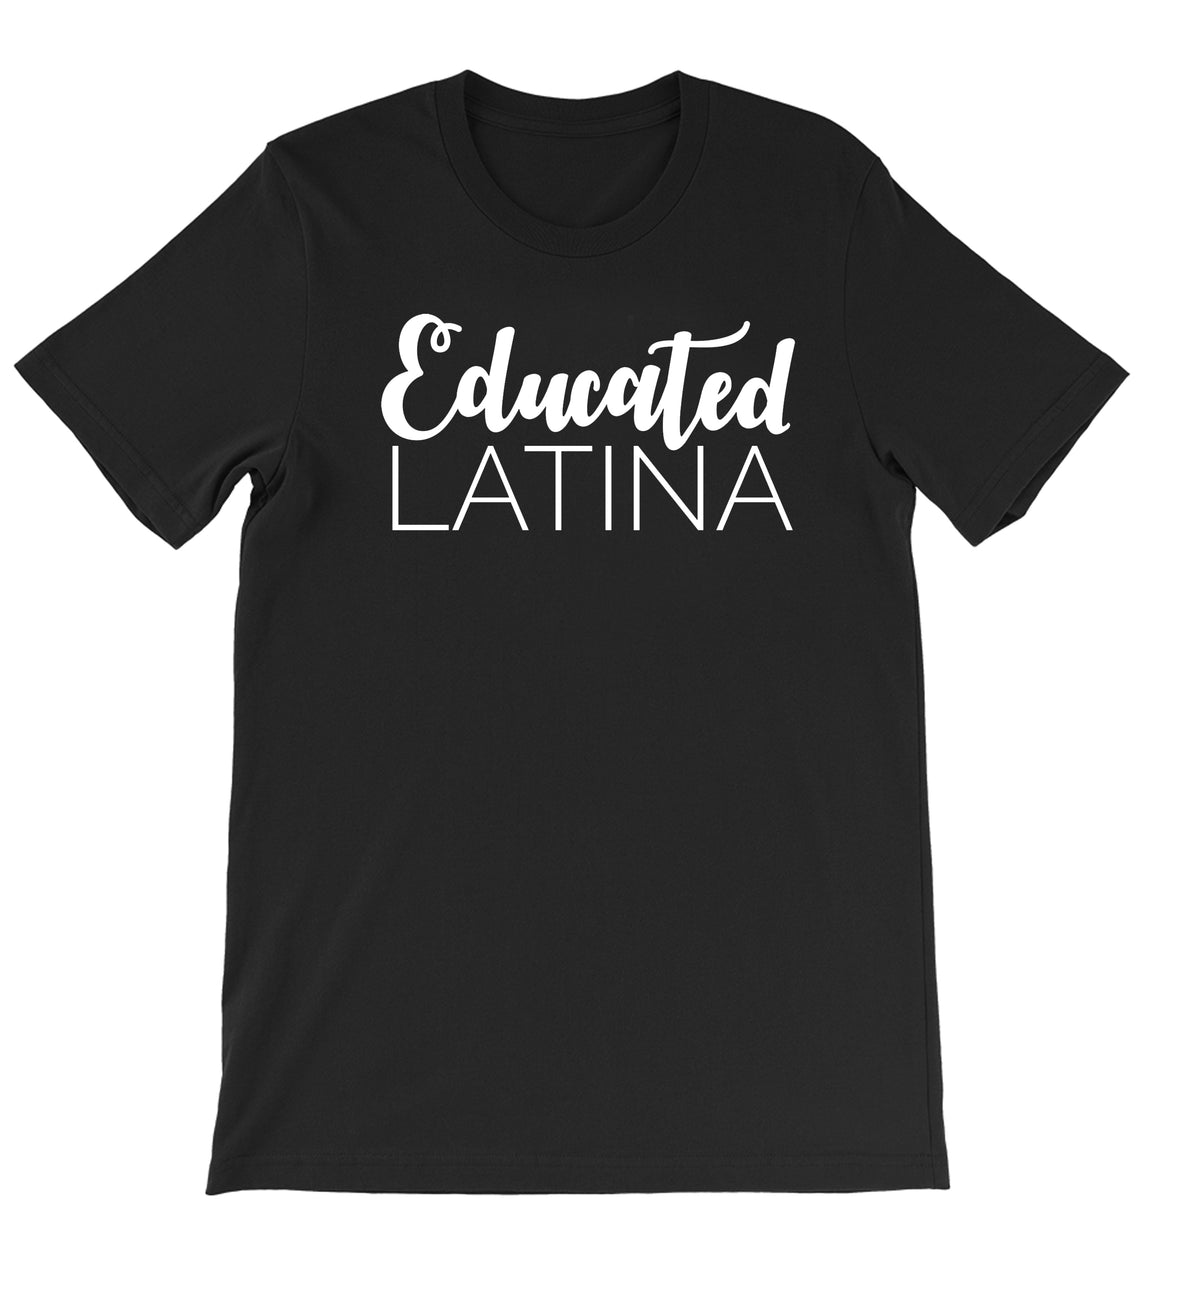 Mi LegaSi Educated Latina Adult T-Shirt